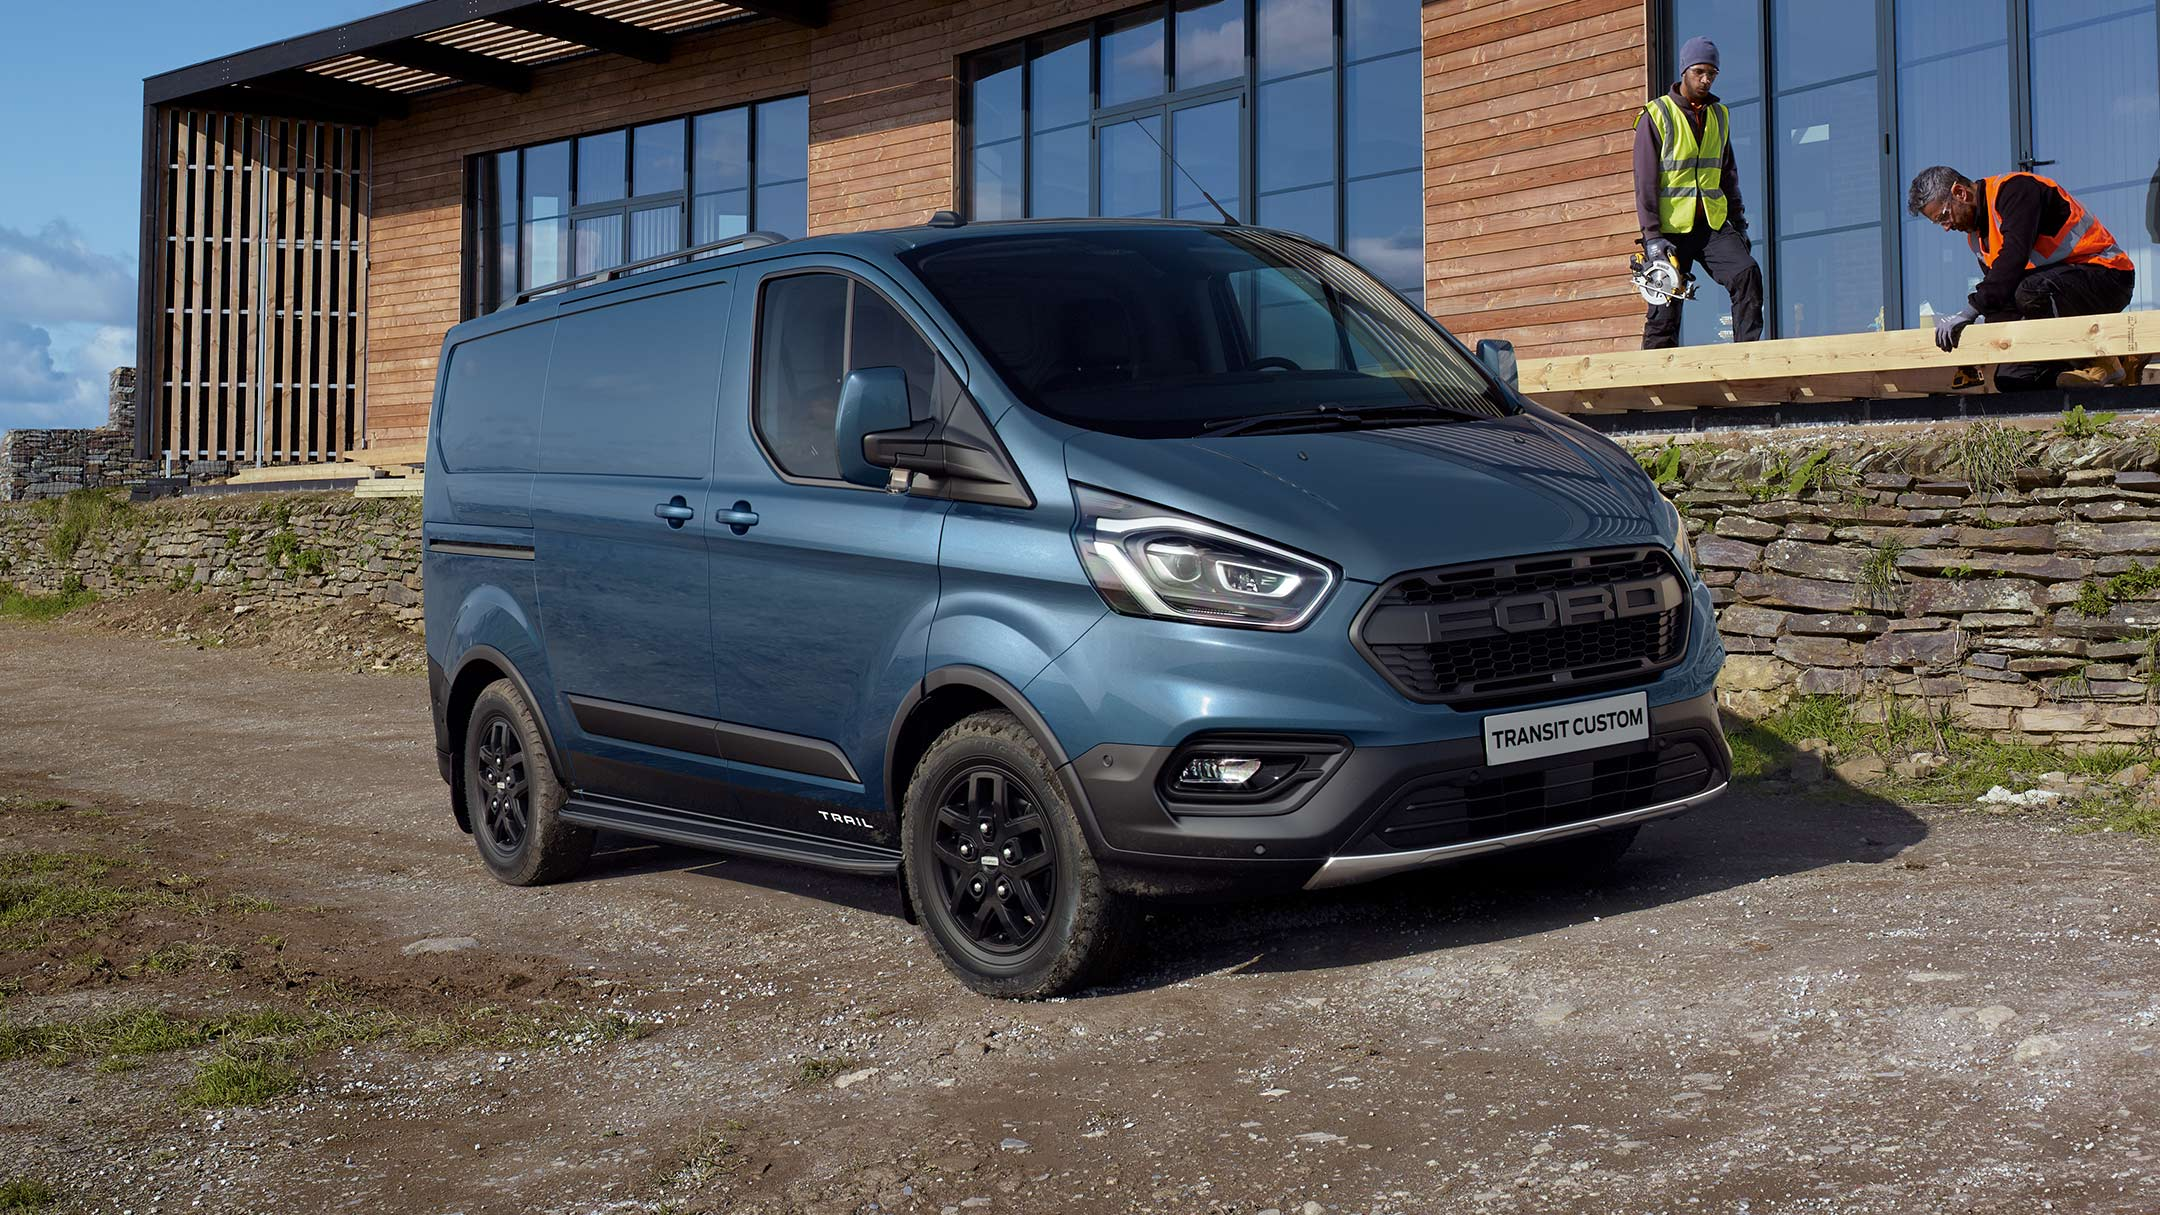 Ford Transit Custom Trail side view